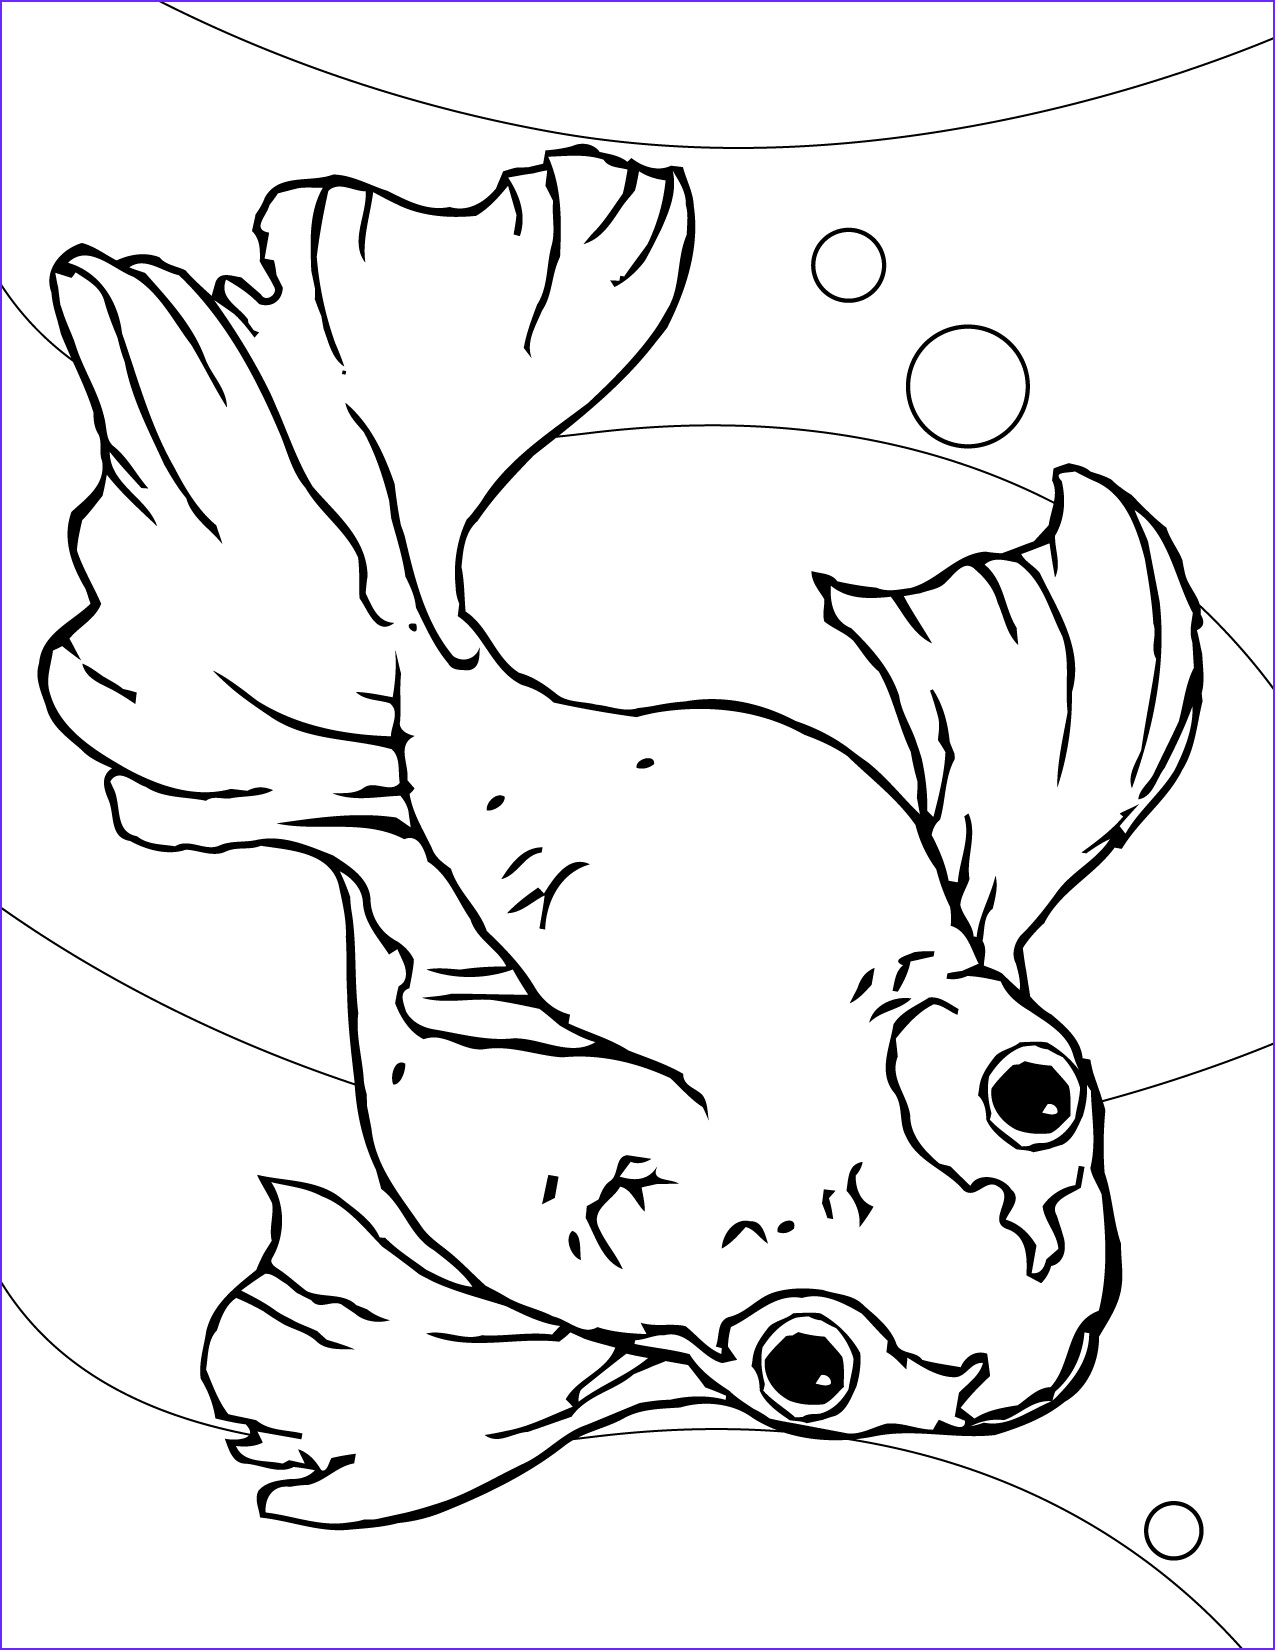 Free Printable Fish Coloring Pages Awesome Gallery Free Printable Goldfish Coloring Pages for Kids